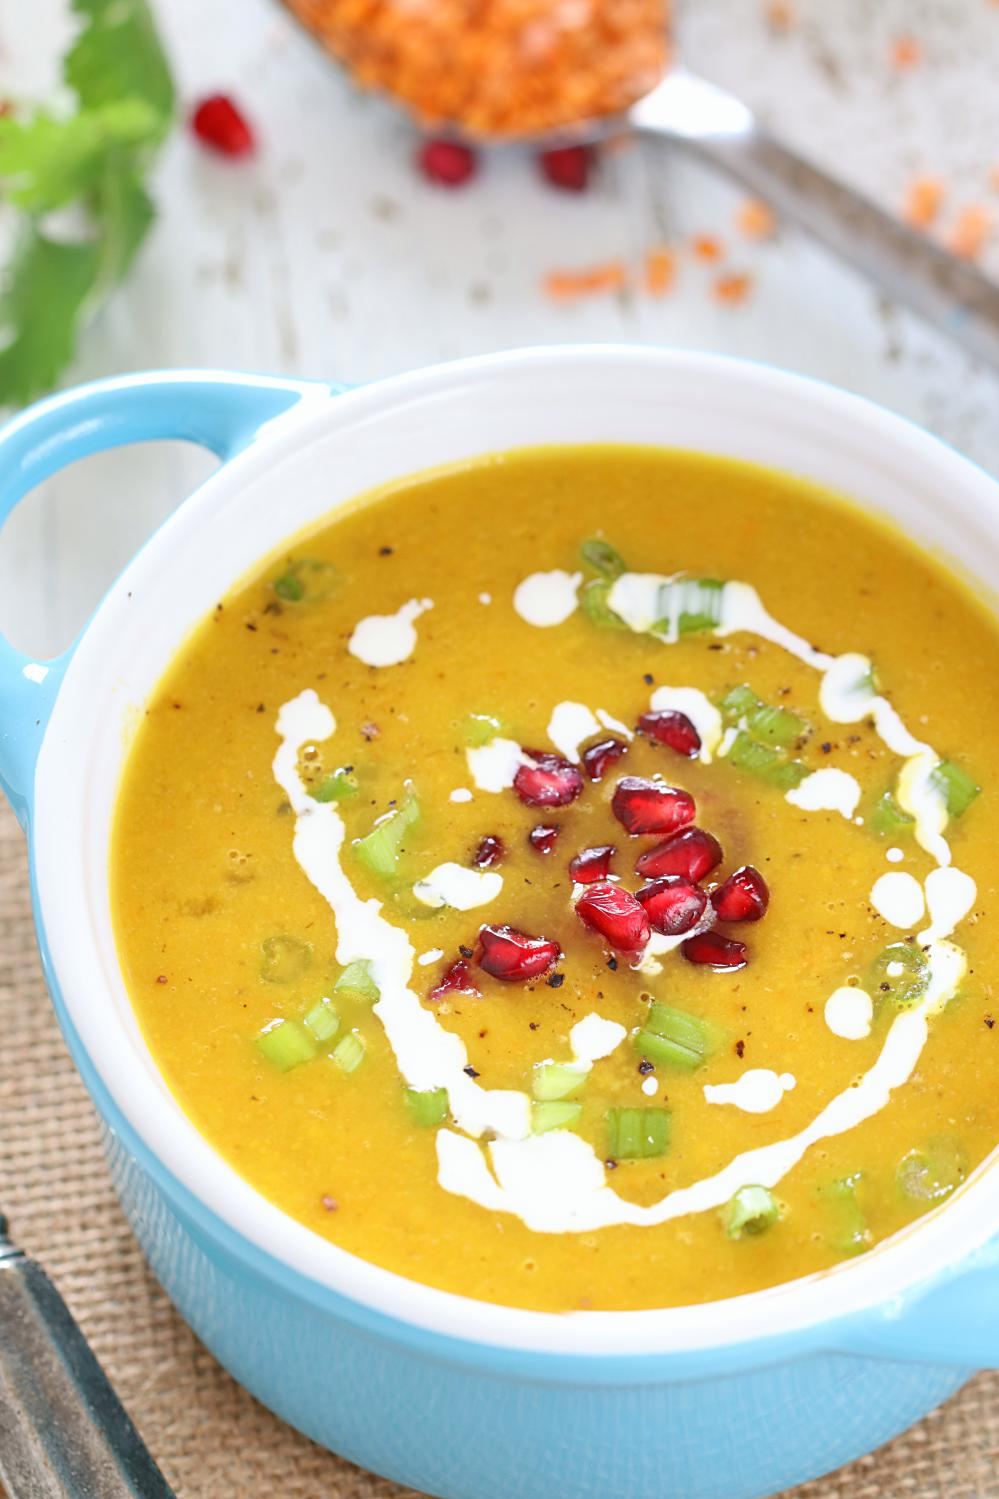 Butternut Squash and Lentil Soup garnished with pomegranate seeds